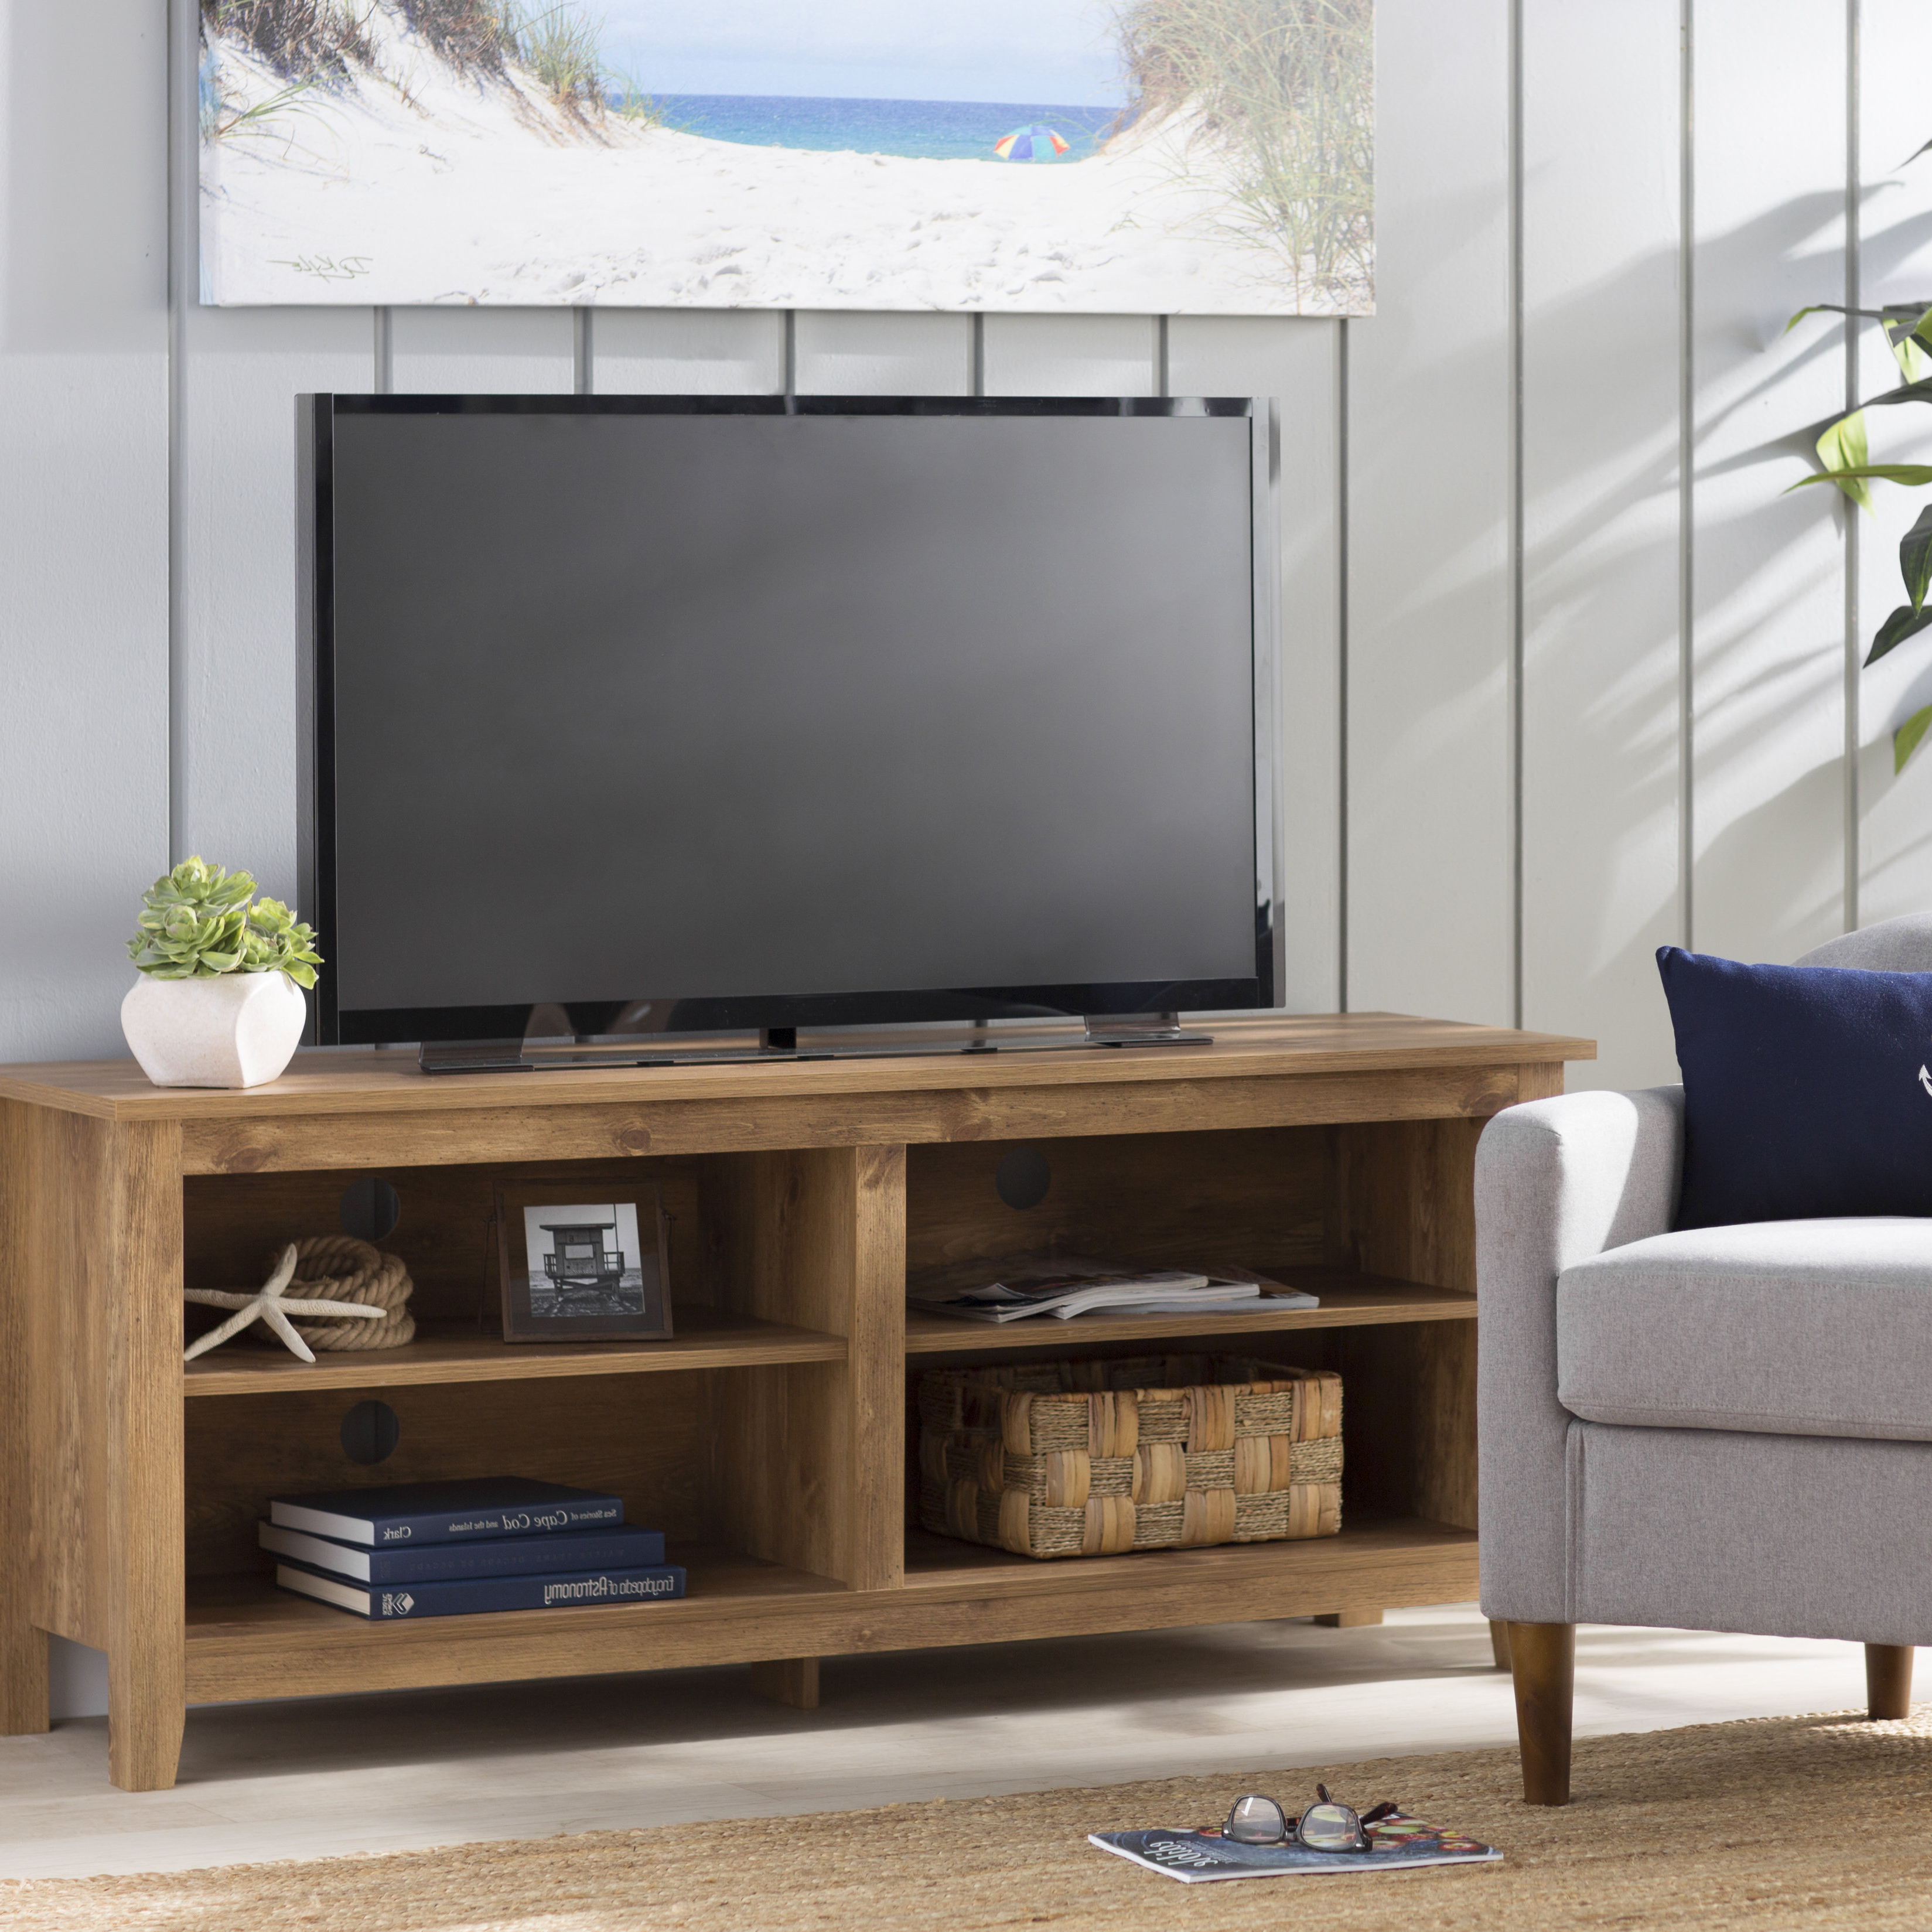 "Well Liked Sleek Tv Stands Within Beachcrest Home Sunbury Tv Stand For Tvs Up To 60"" & Reviews (View 20 of 20)"